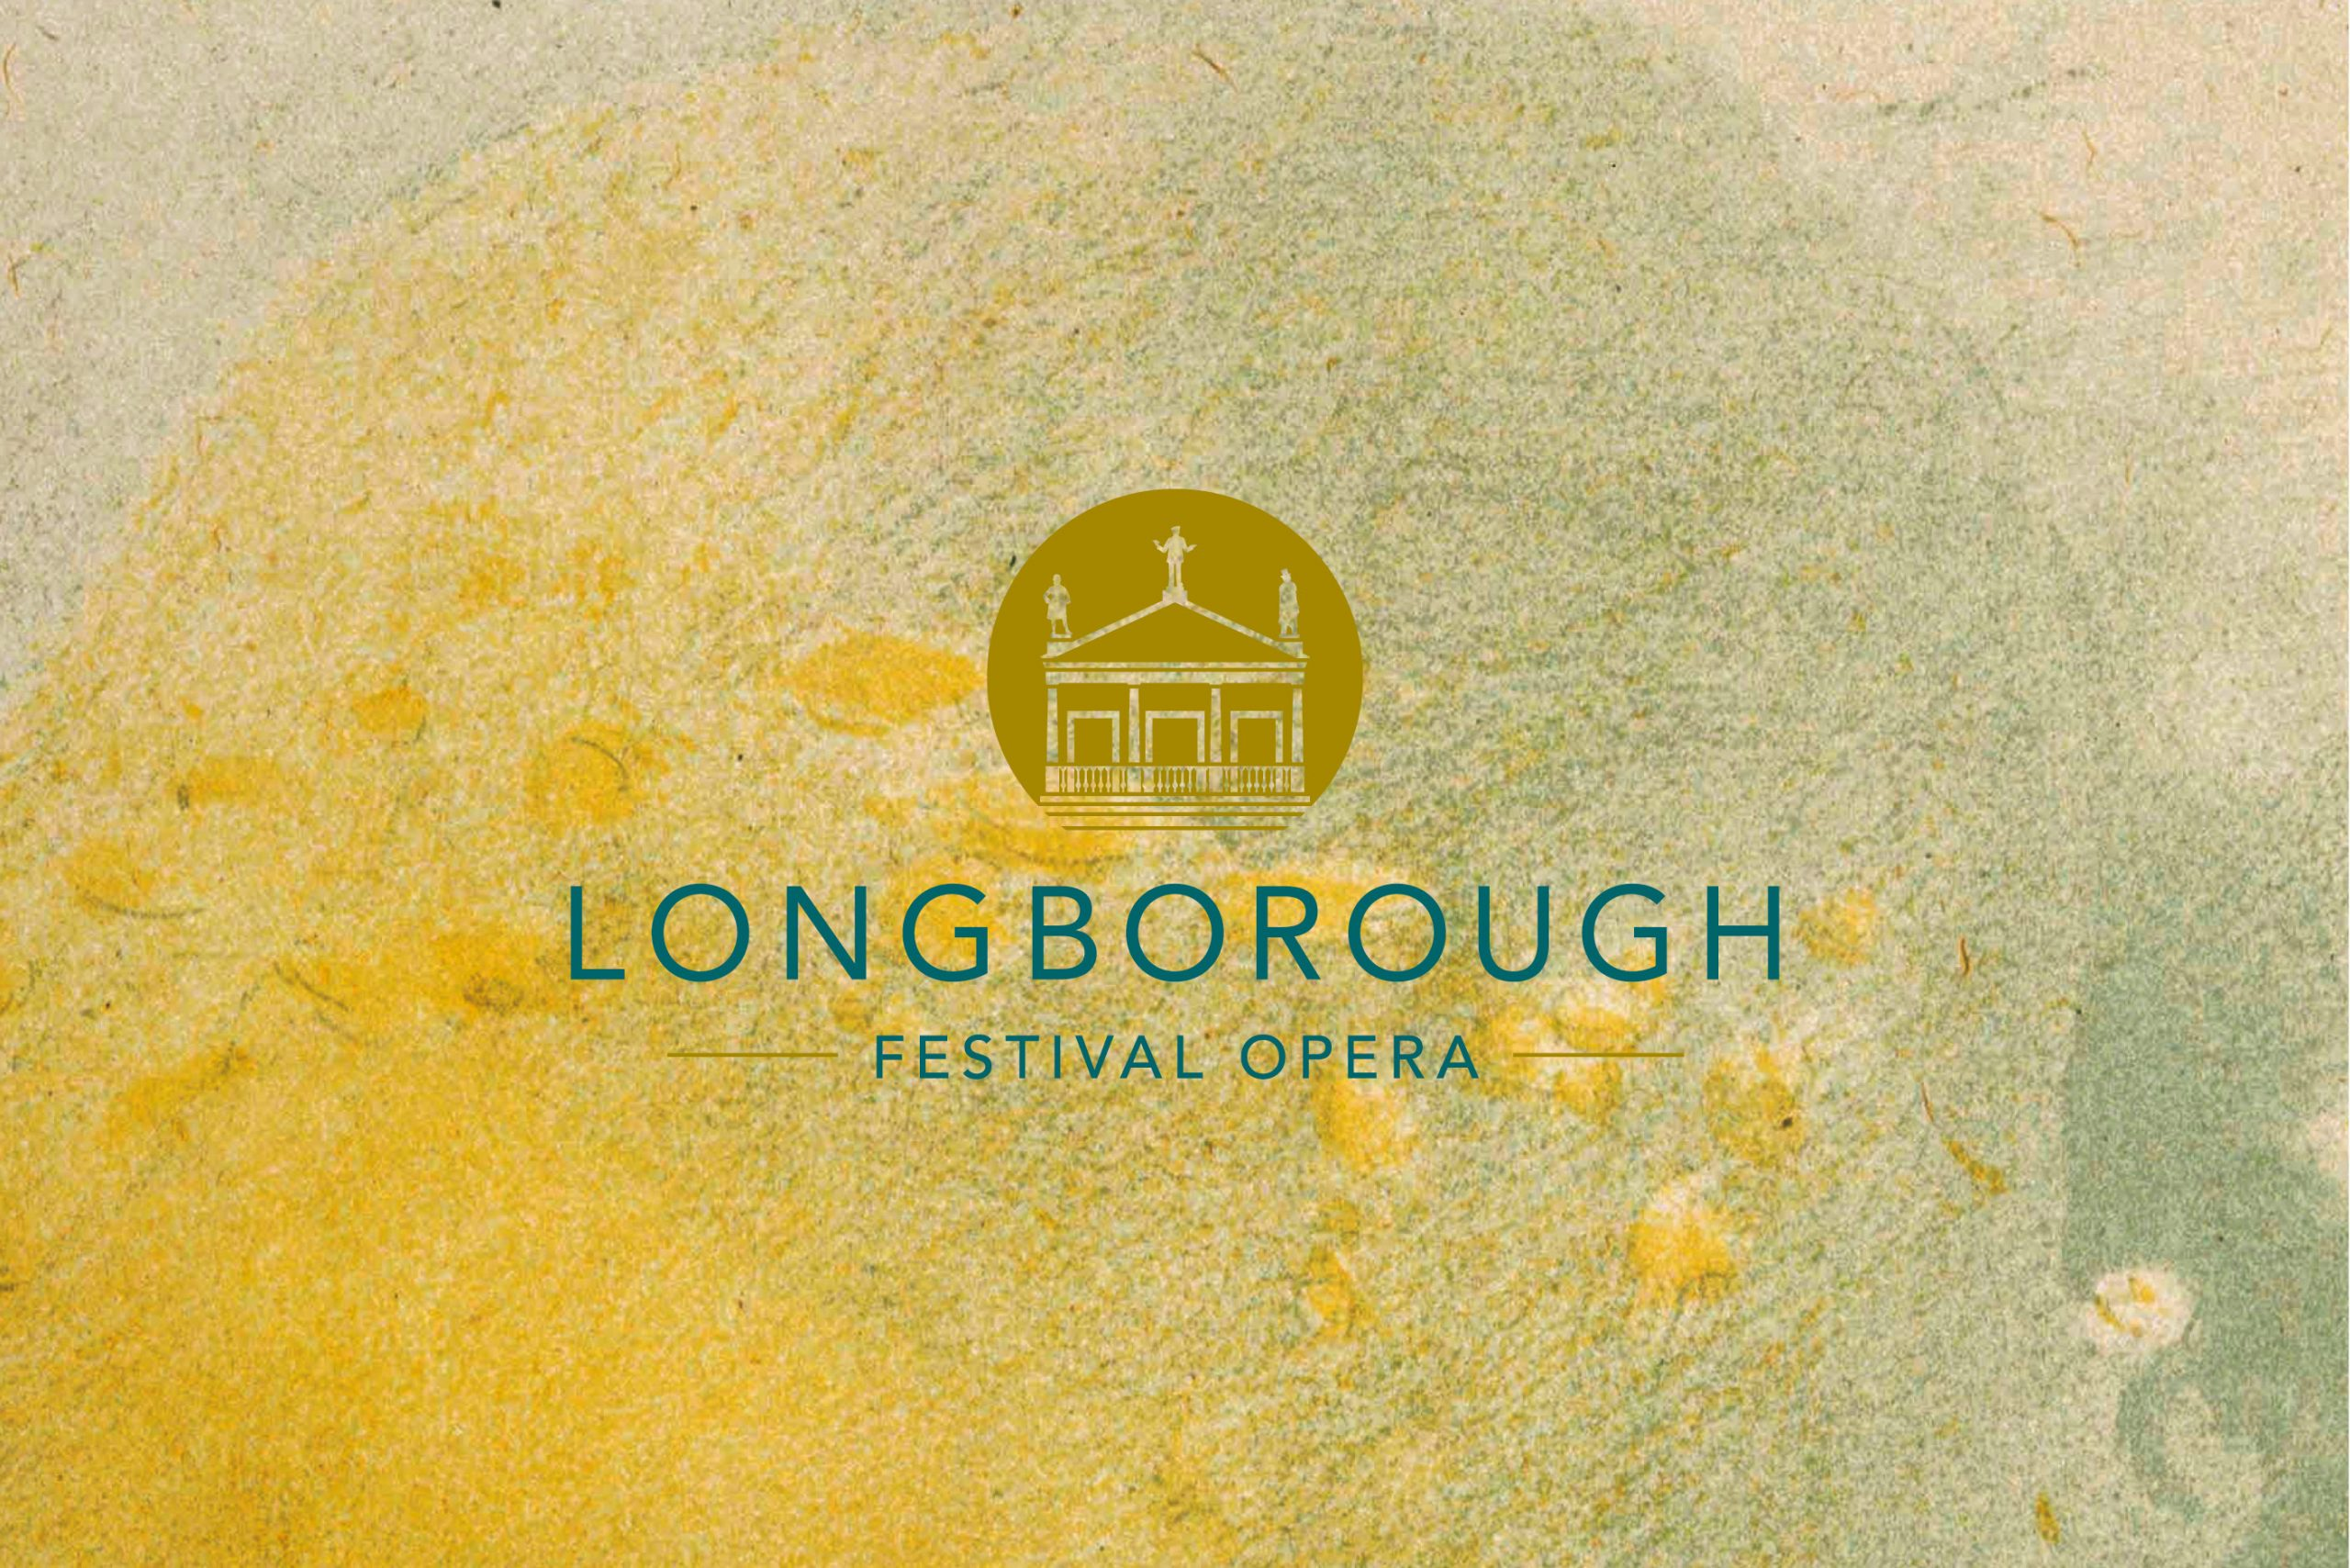 longborough festival opera design page splash image